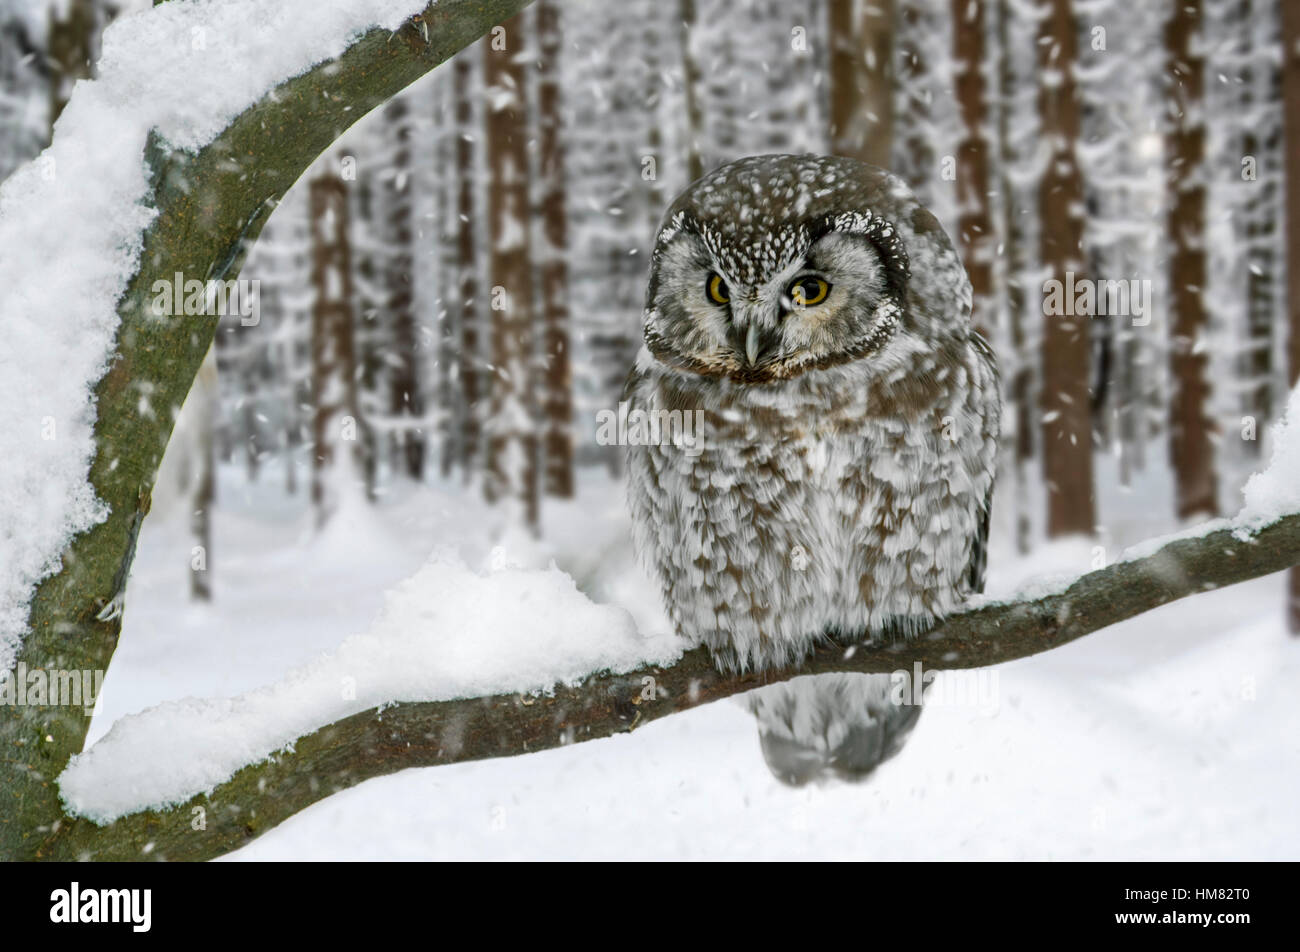 Tengmalm's owl / boreal owl (Aegolius funereus / Nyctala tengmalmi) perched in tree in pine forest during snow - Stock Image